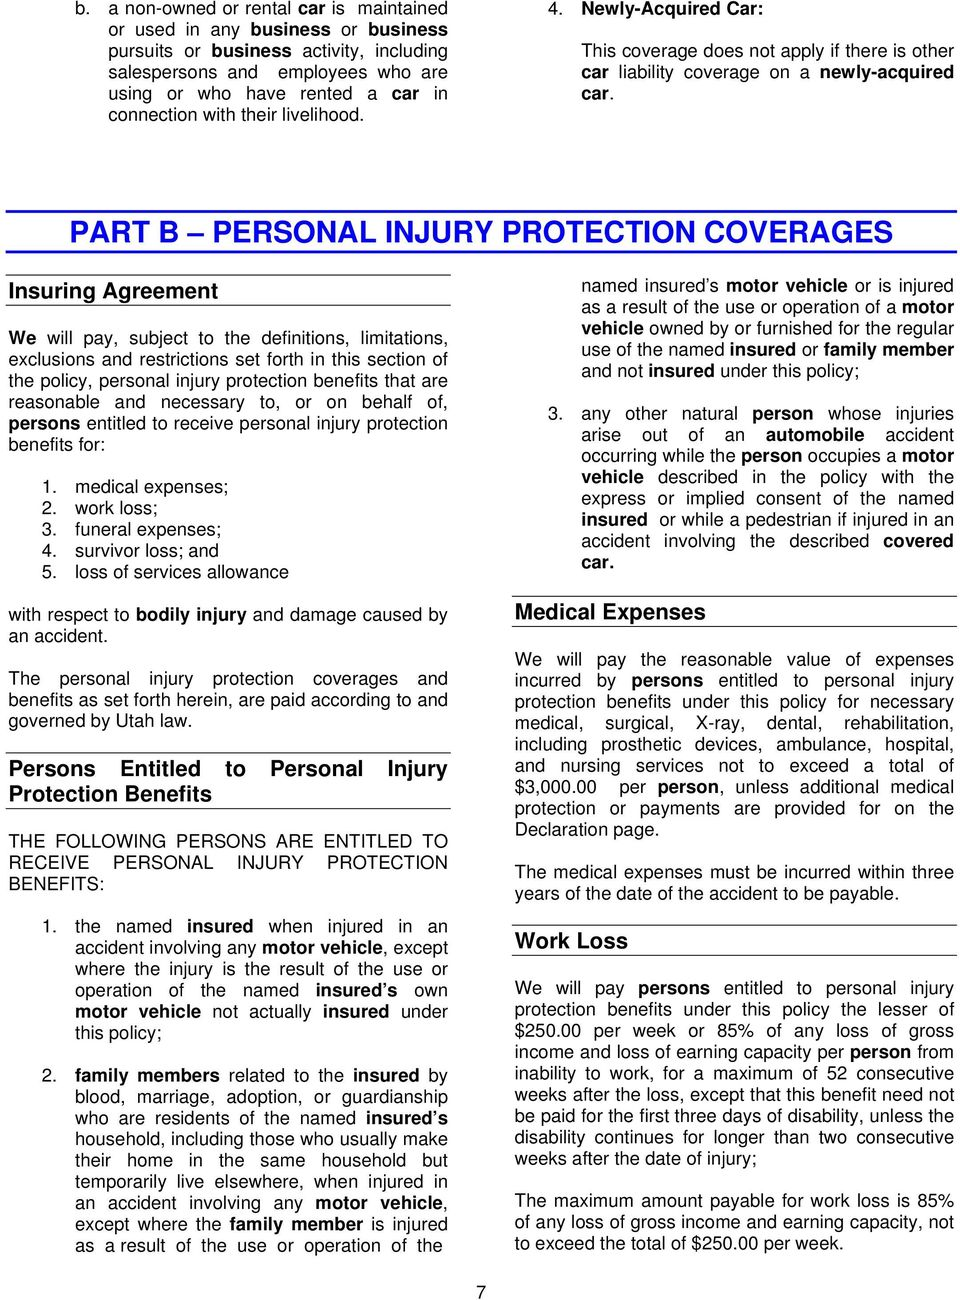 PART B PERSONAL INJURY PROTECTION COVERAGES Insuring Agreement We will pay, subject to the definitions, limitations, exclusions and restrictions set forth in this section of the policy, personal